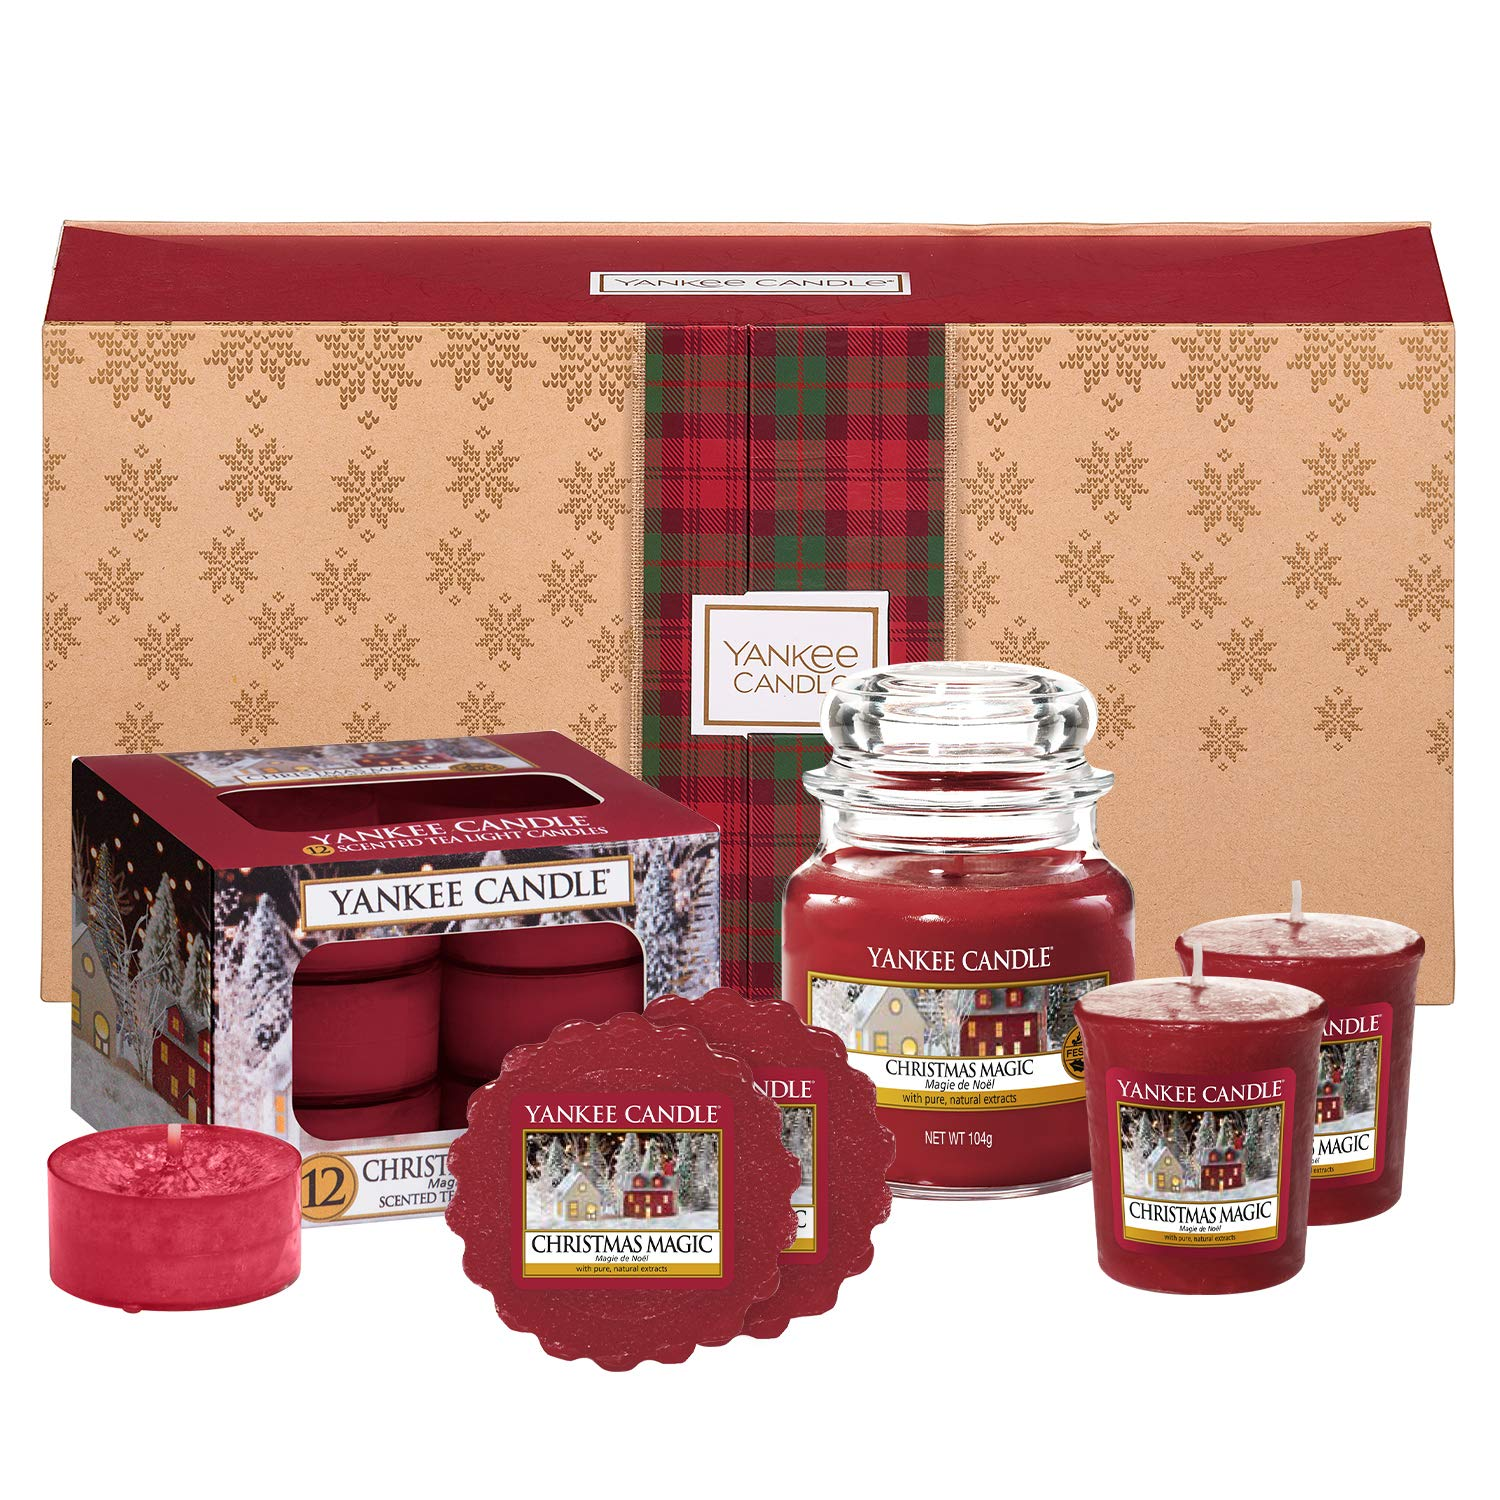 Yankee Candle Scented Gift Set with 1 Small Jar Candle, 2 Votive Candles, 12 Tea Lights and 2 Wax Melts